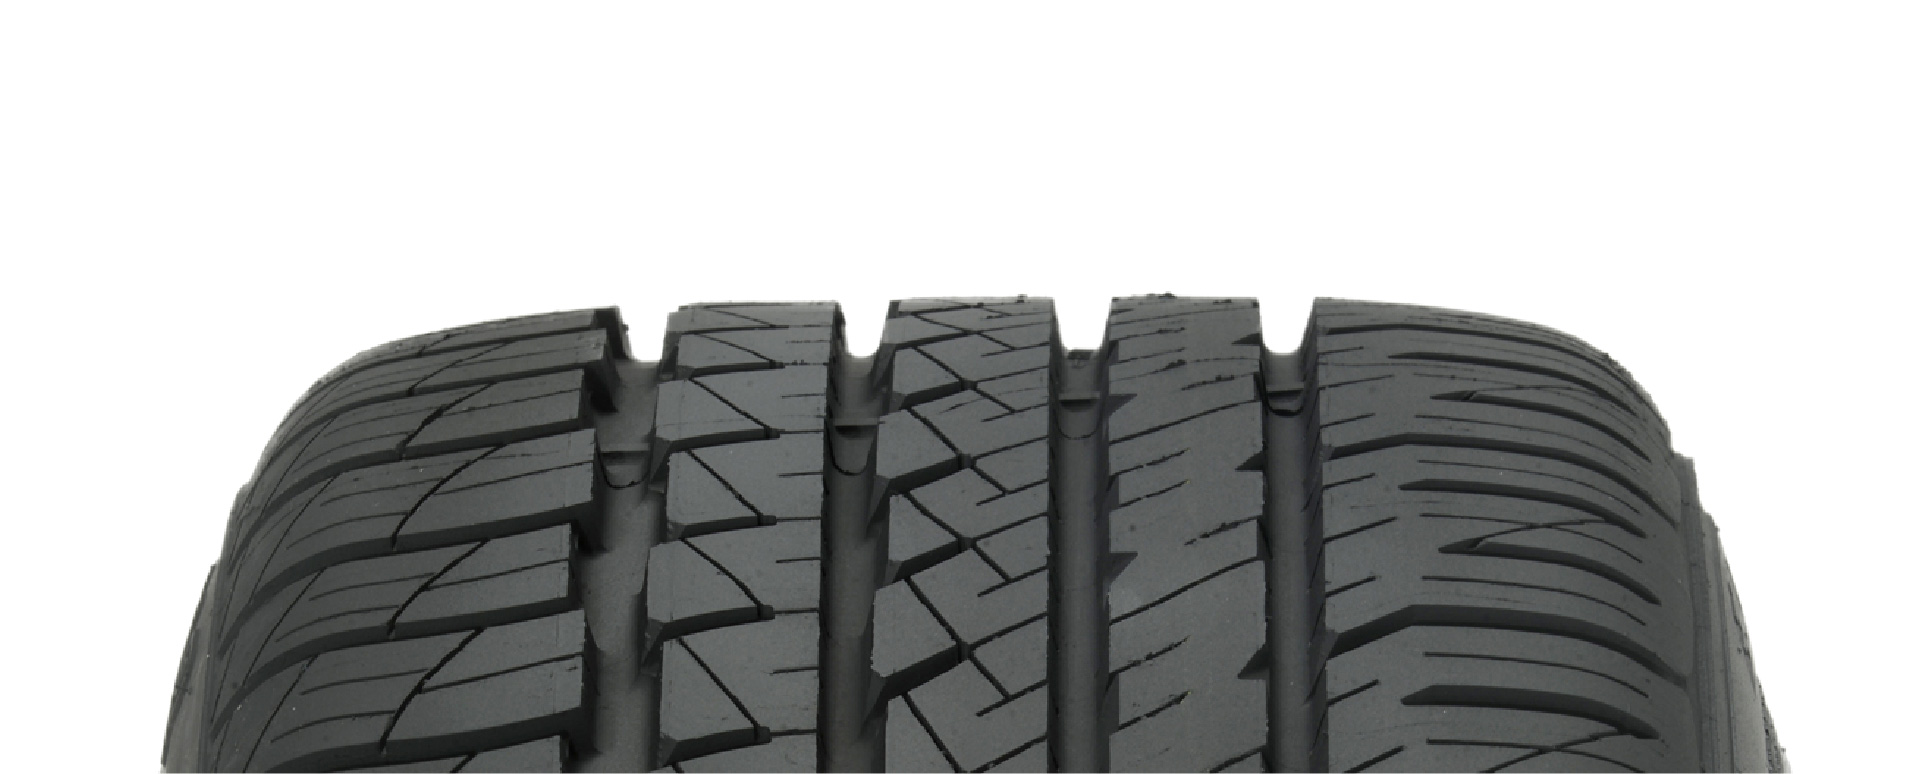 getTREAD installs tires you already have